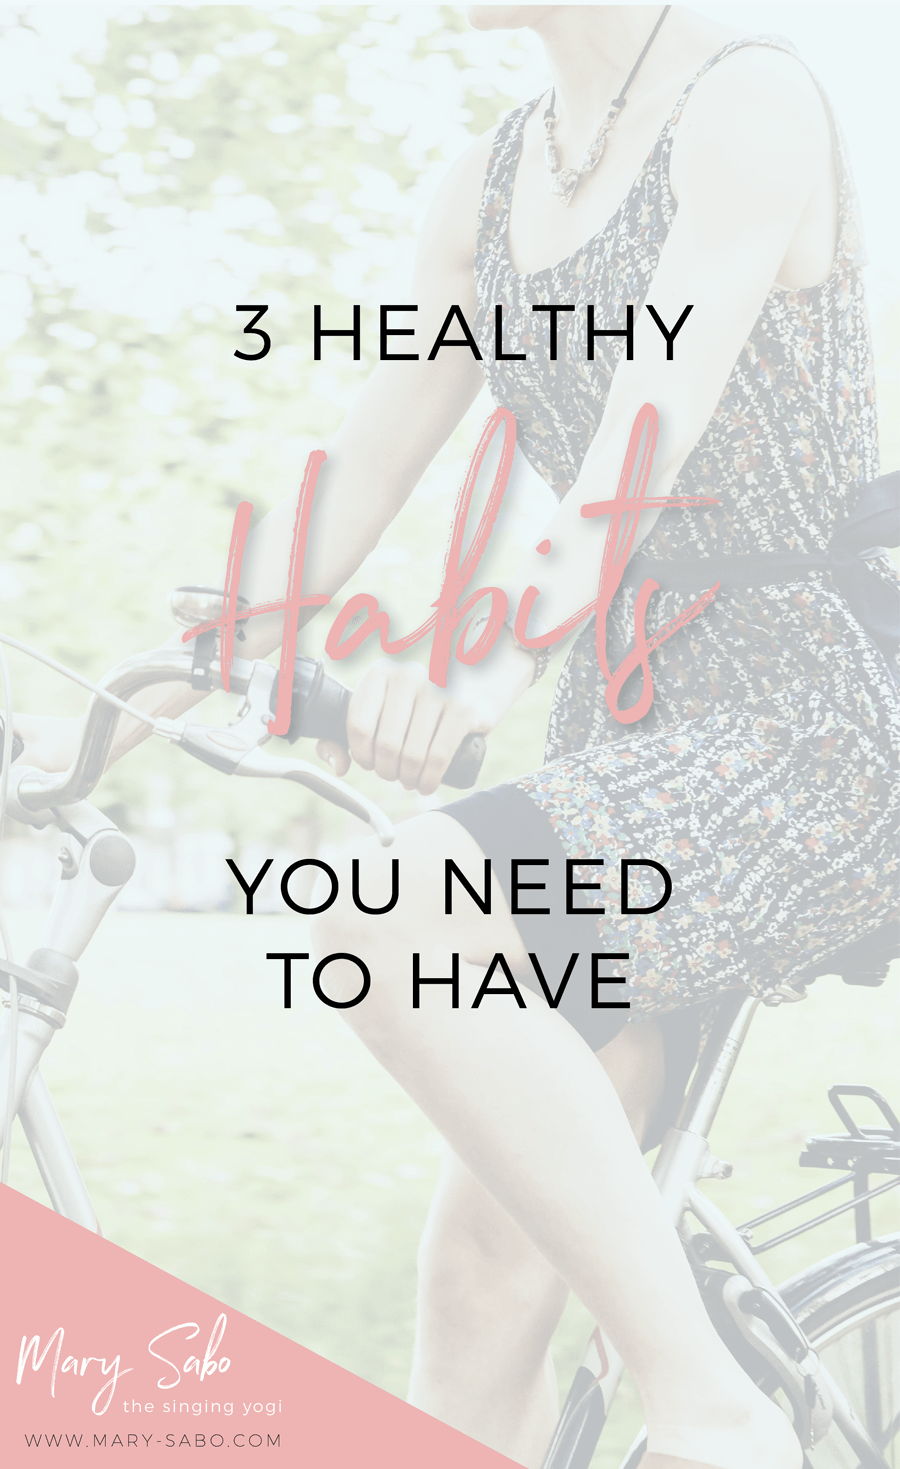 3-Healthy-Habits-You-Need-To-Have-1.png